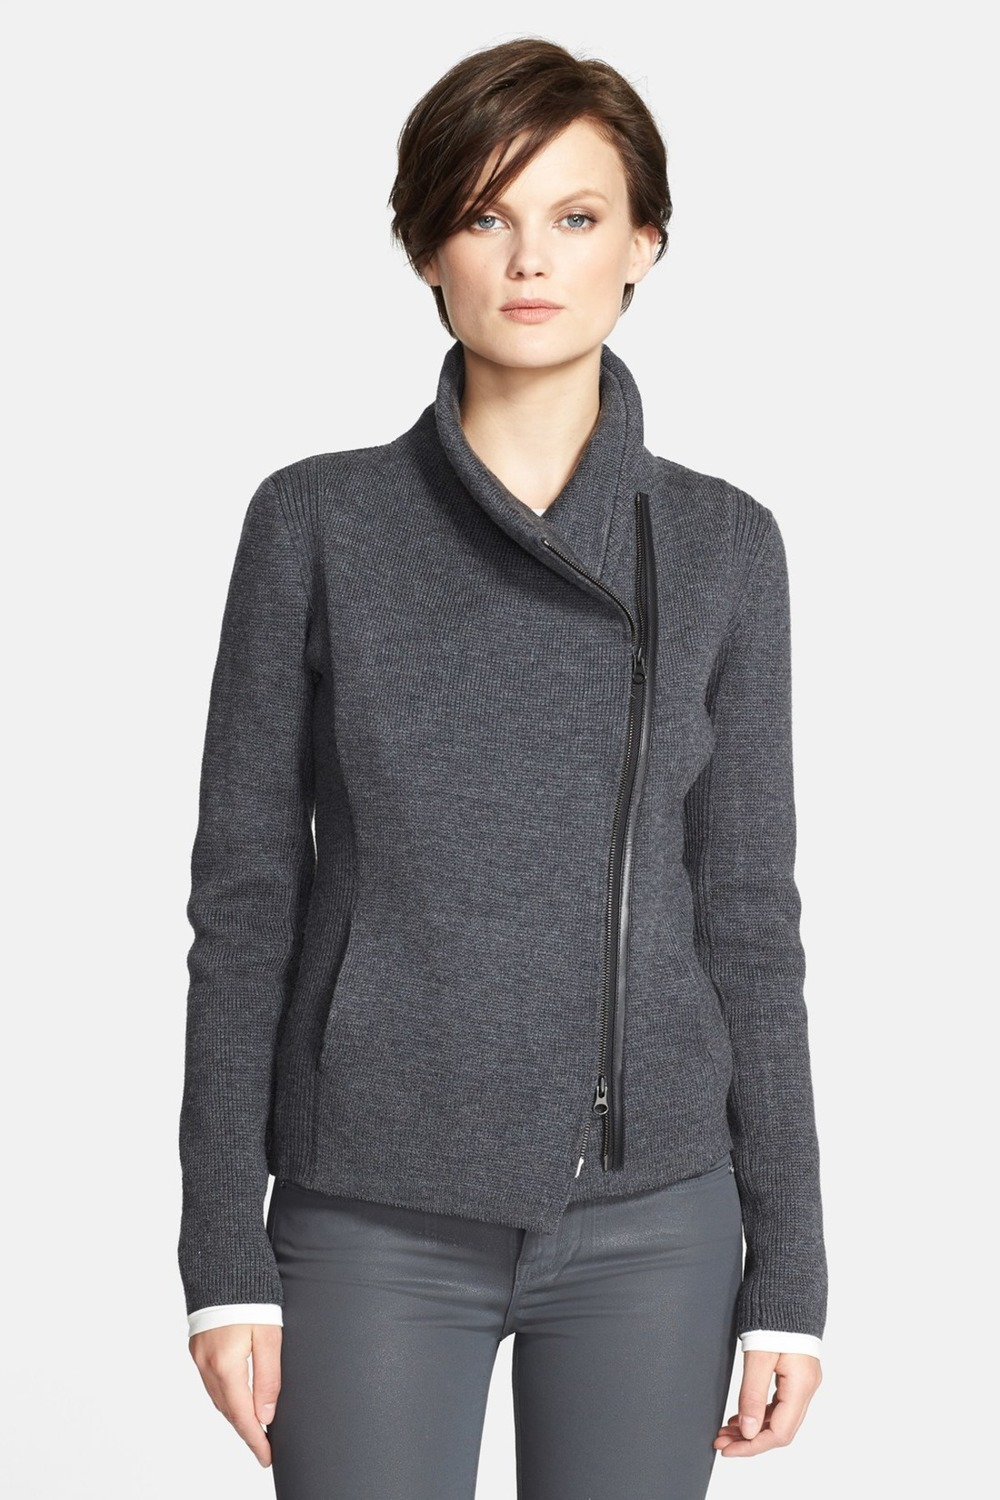 VINCE Sweater Scuba Jacket. Available in grey, black. Nordstrom Rack. Was: $465 Now: $219.